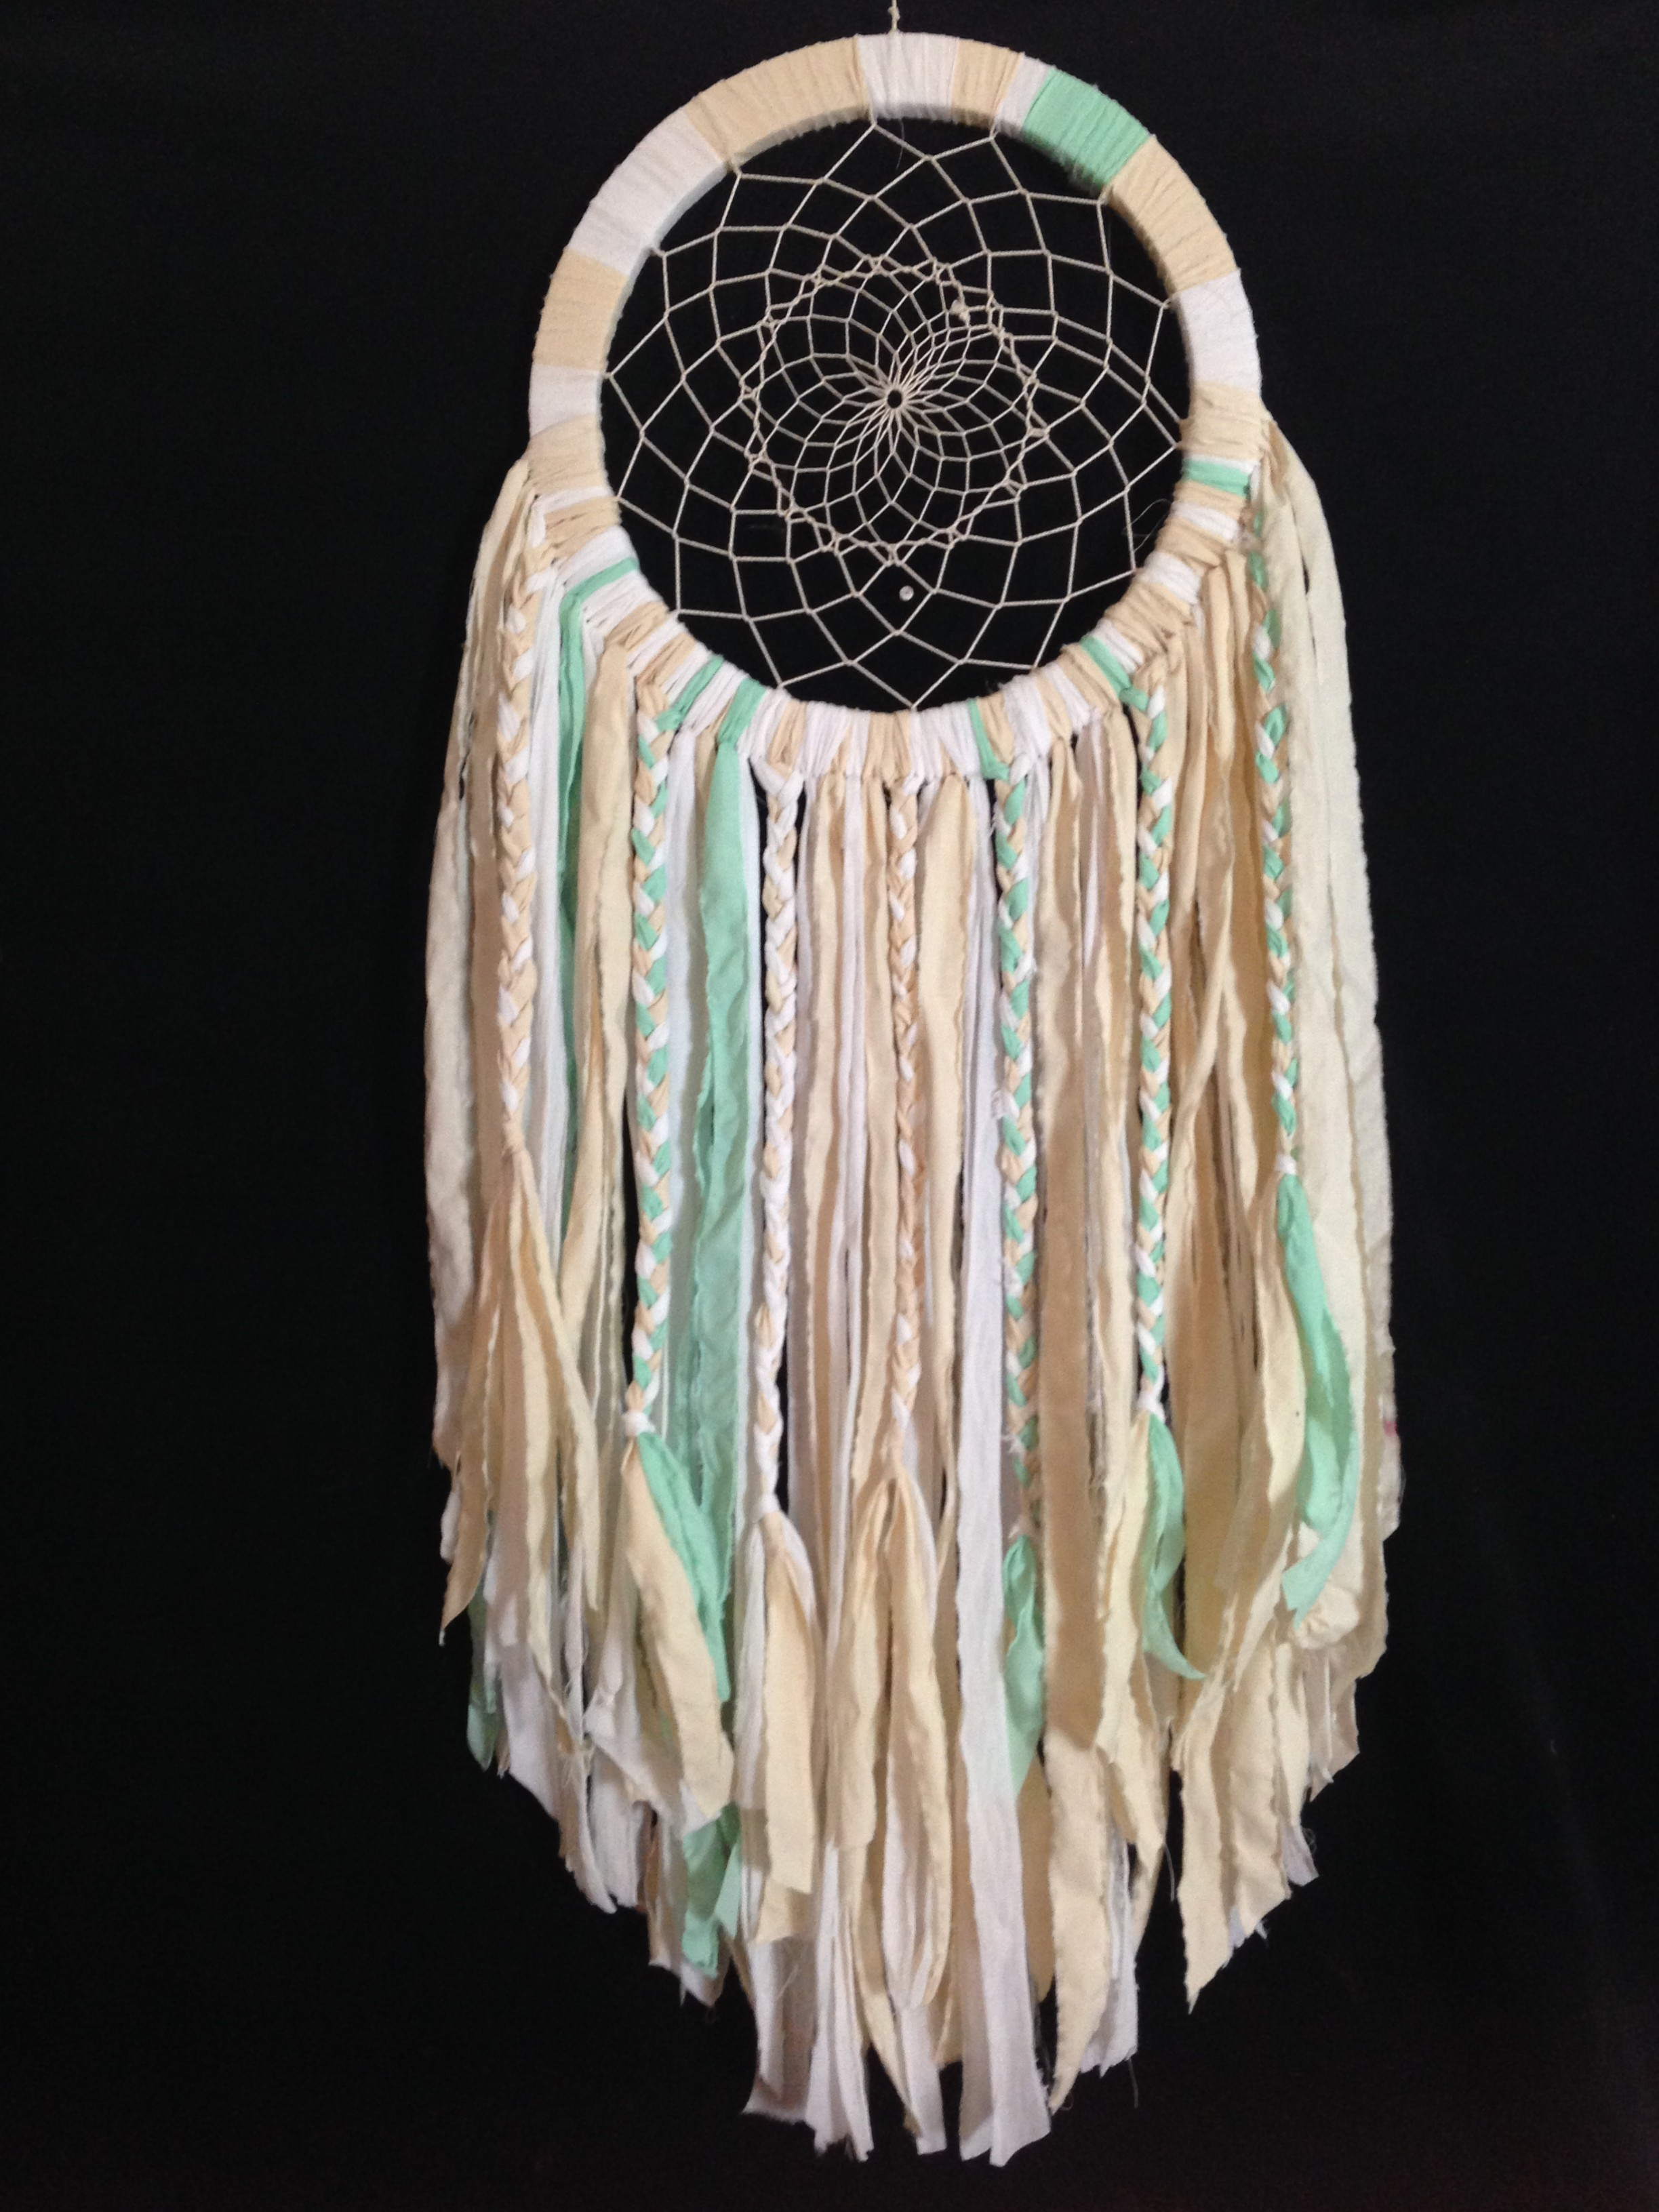 spoke woven dream catchers (custom/vegan)